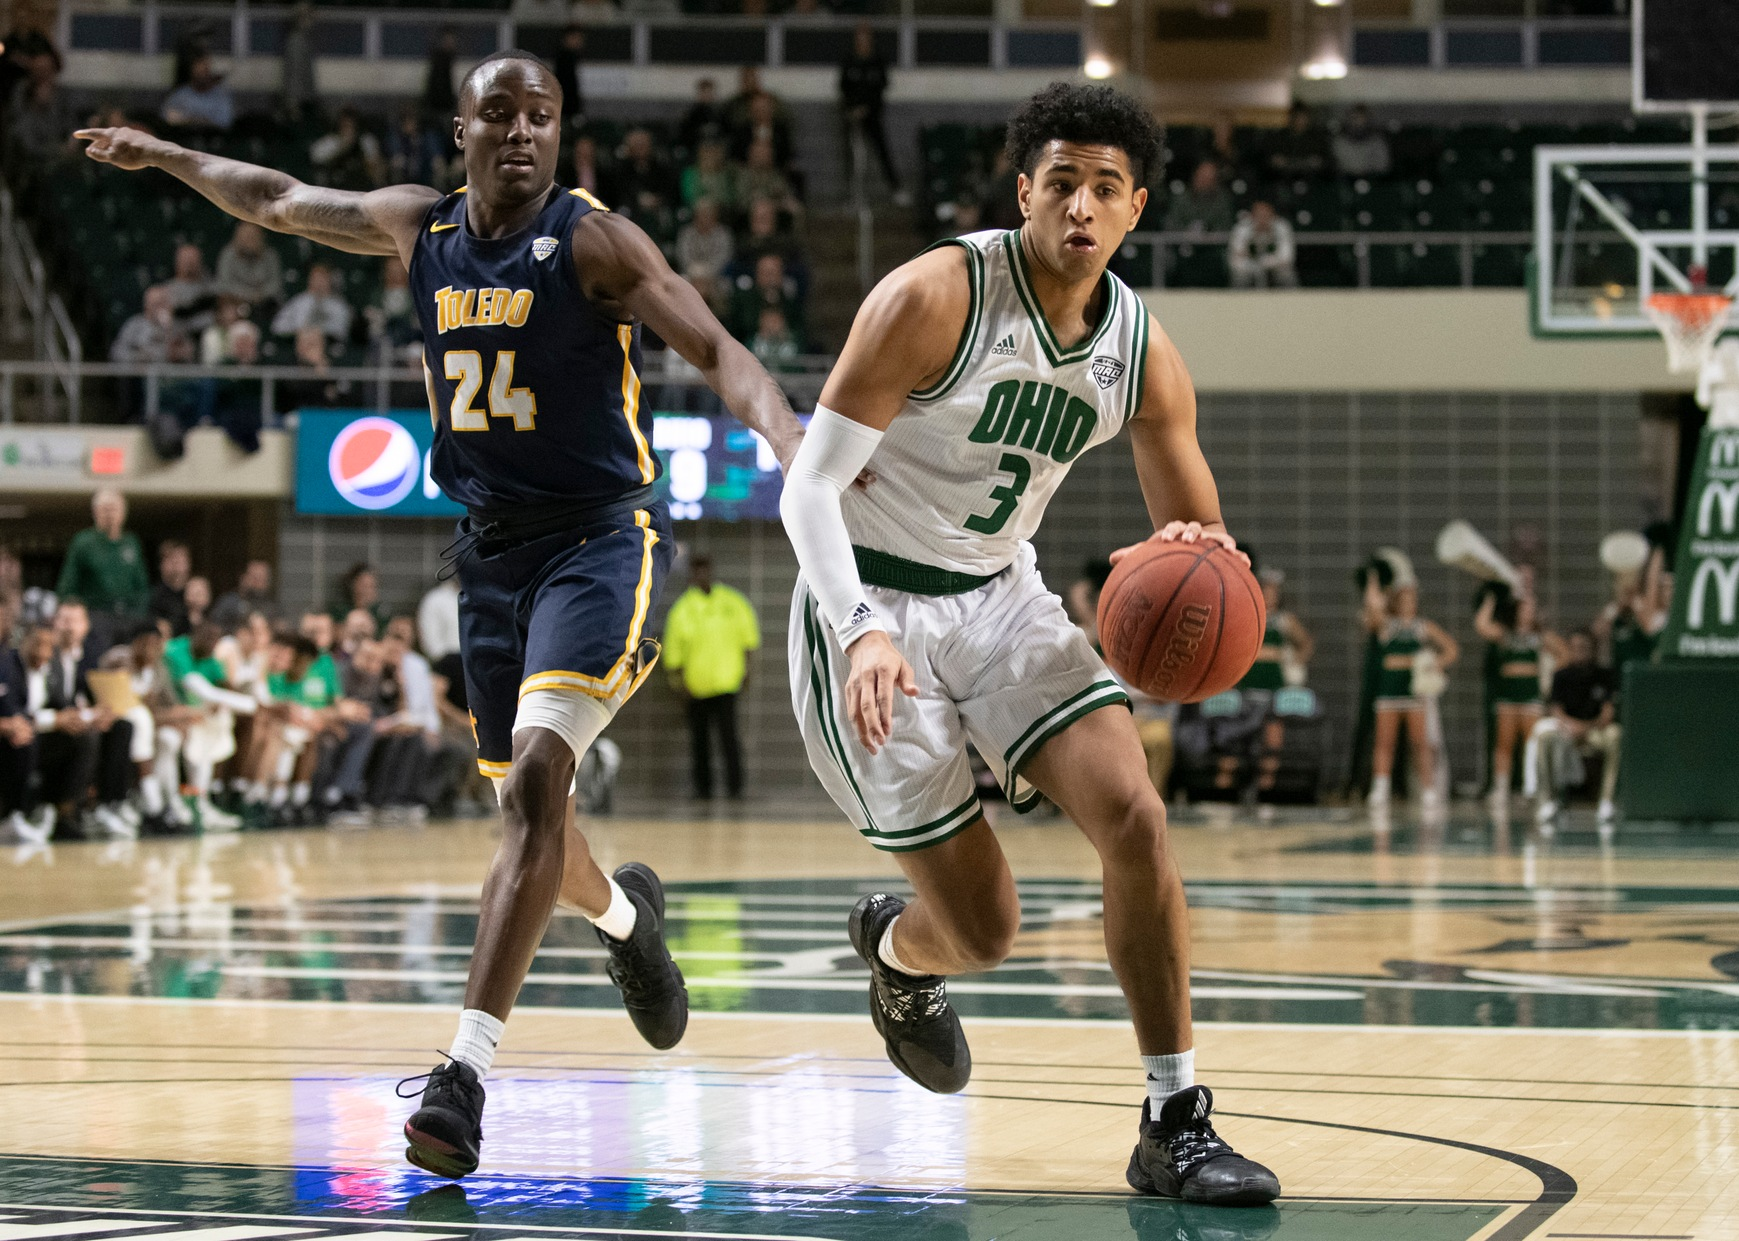 Ohio Men's Basketball Set to Host MAC East Rival Akron on Saturday